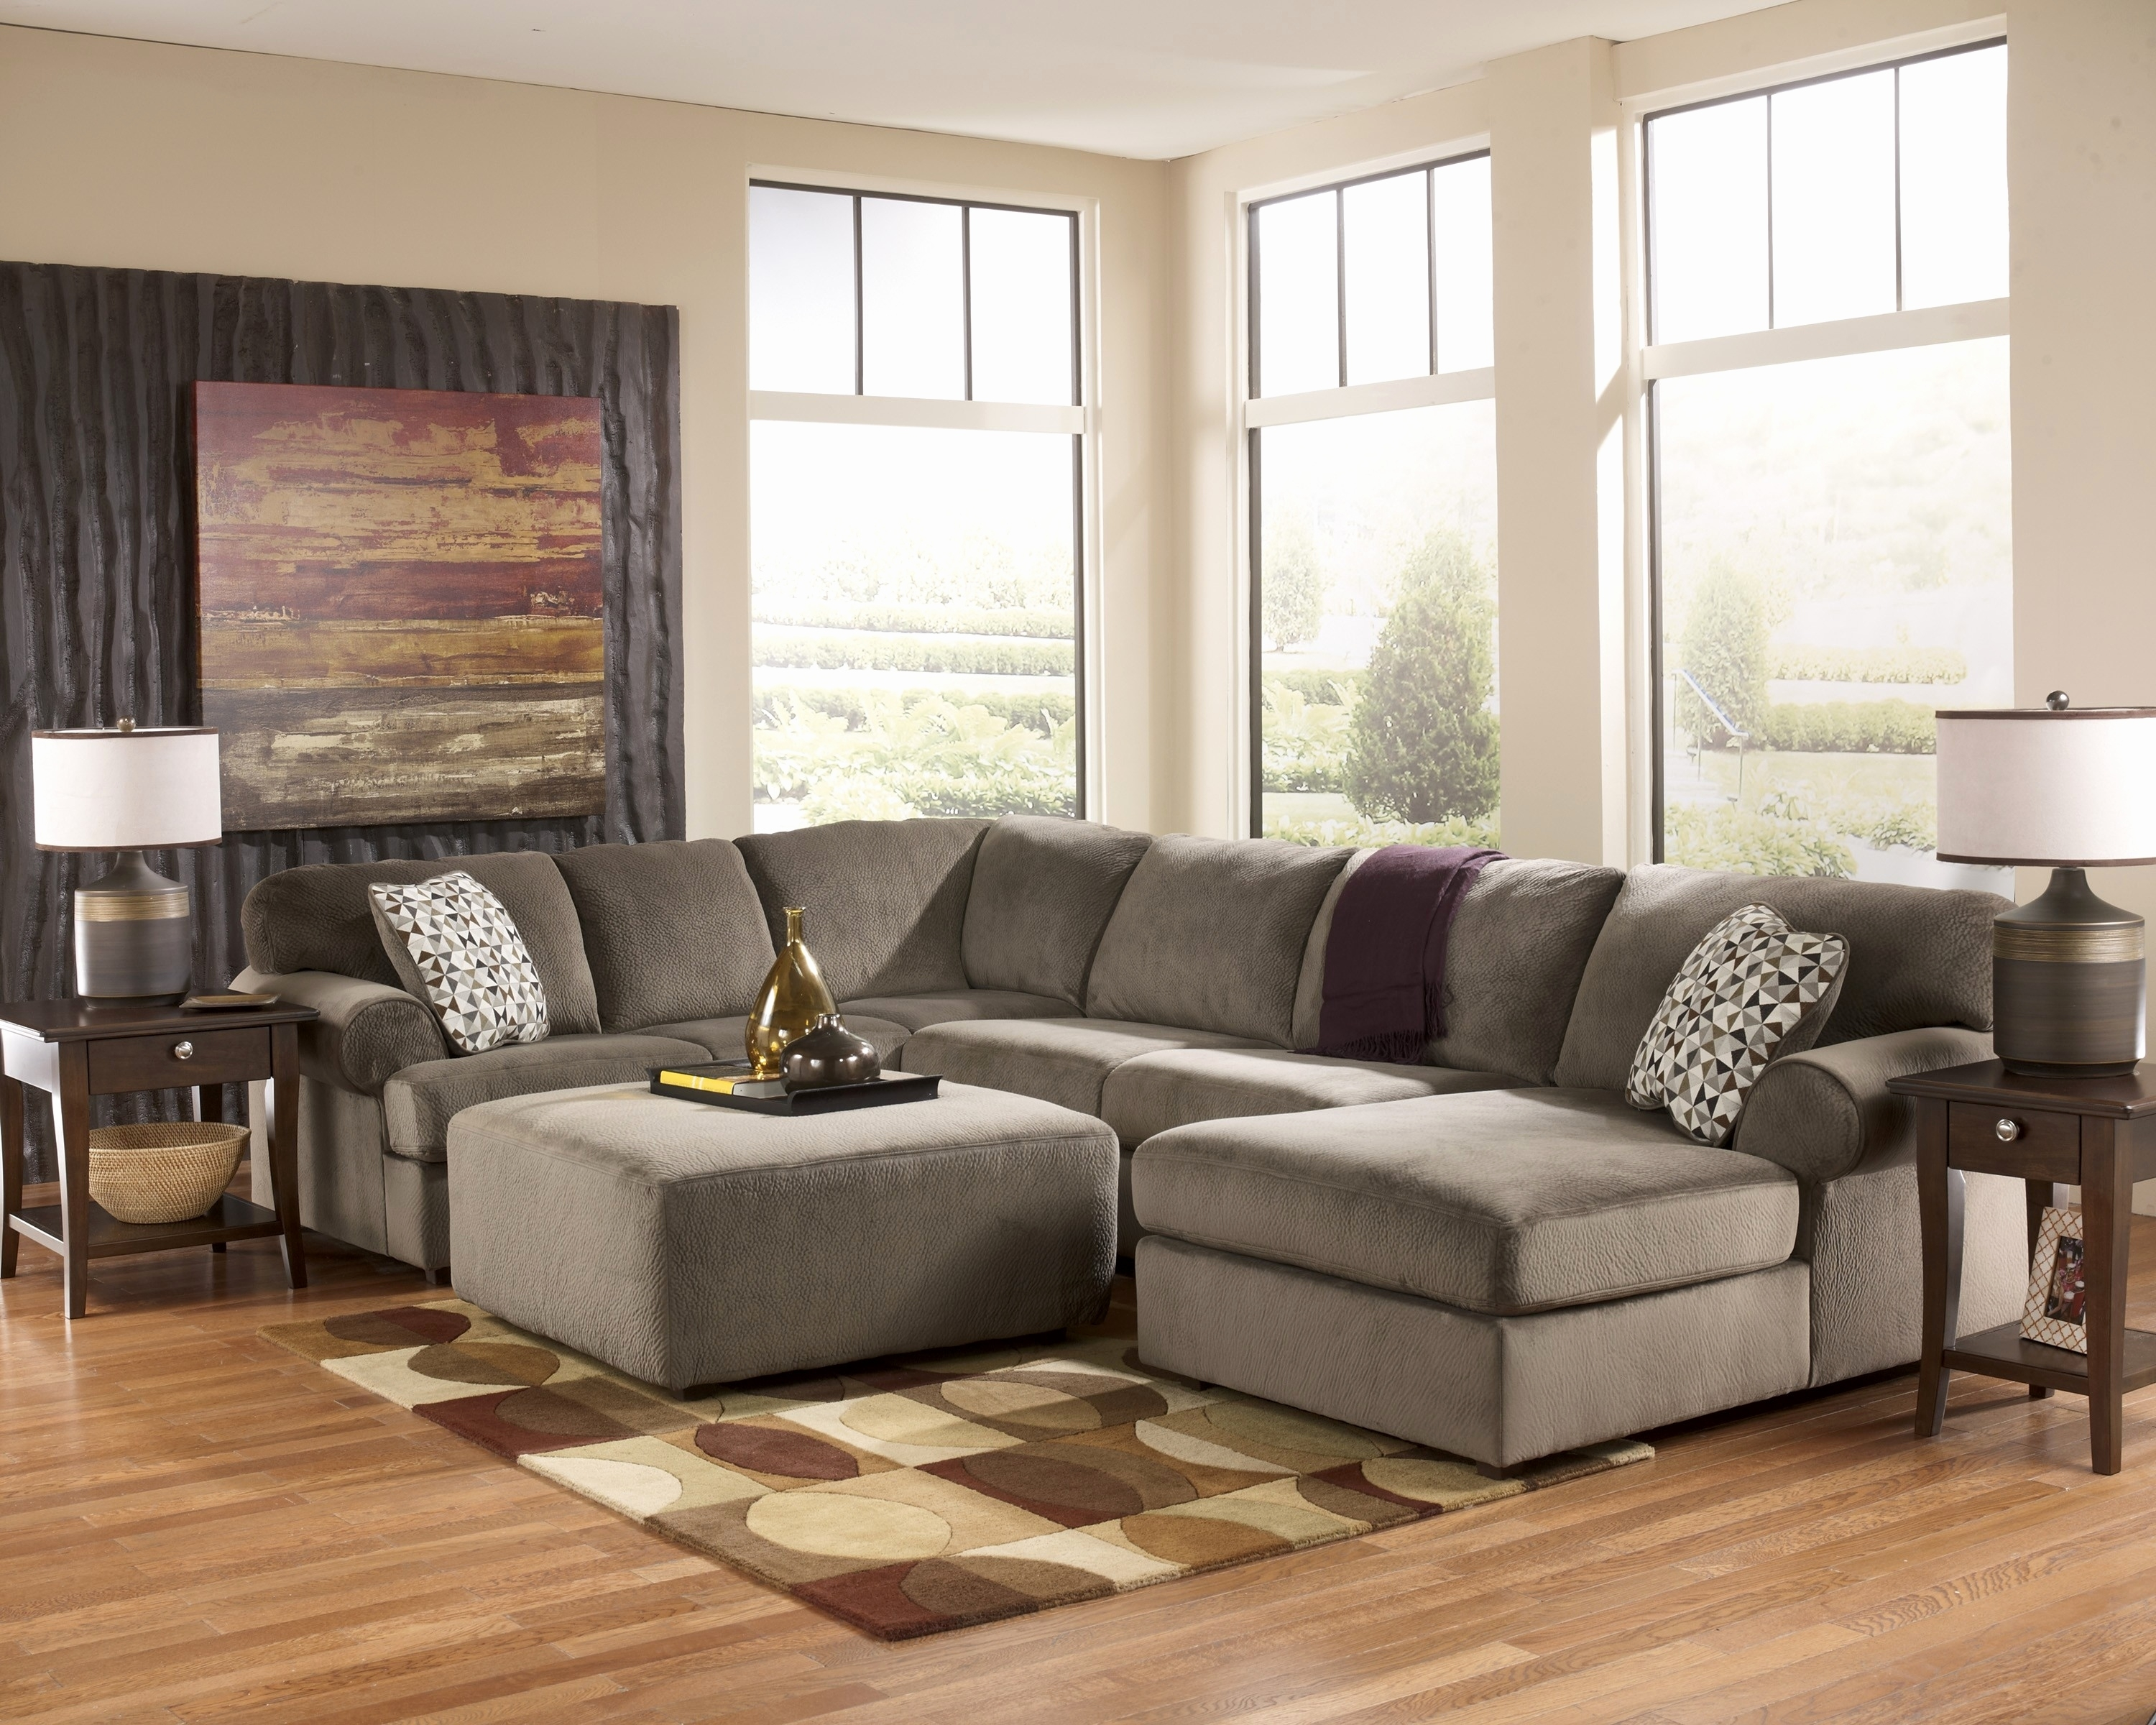 Sectional Sofa : Reclin~1 Sectional With Oversized Ottoman With Sectionals With Oversized Ottoman (View 7 of 15)